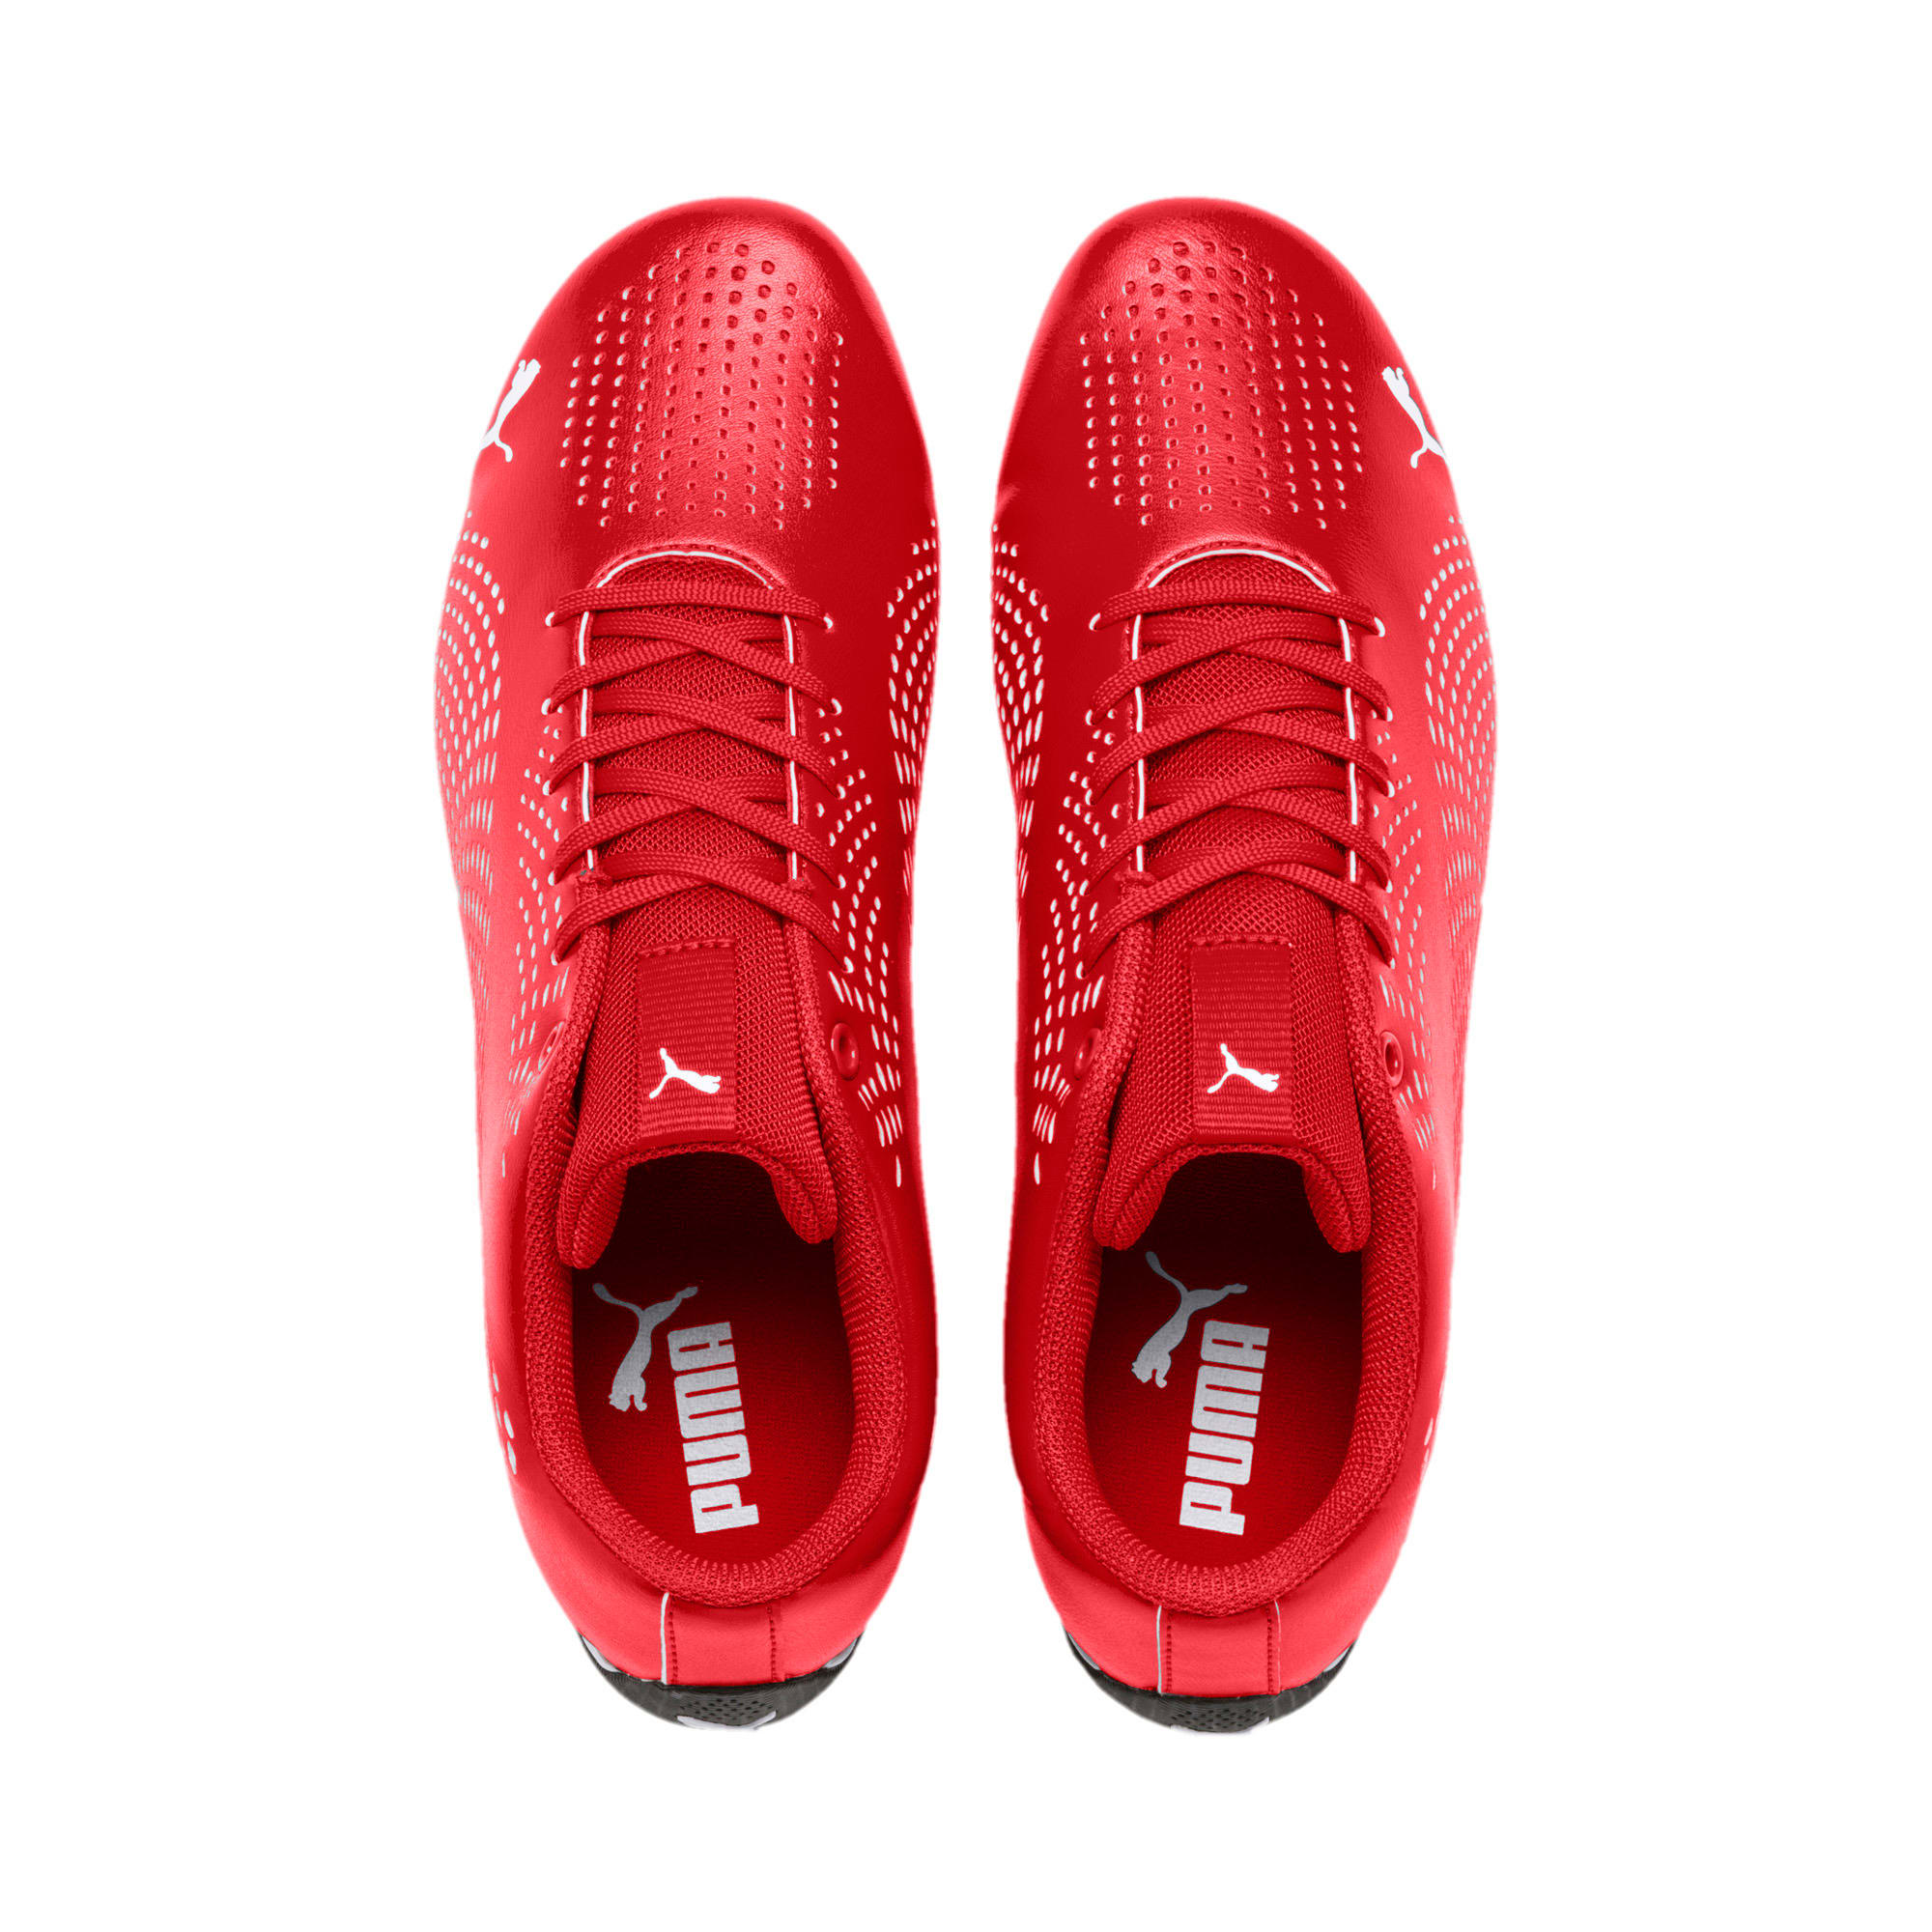 Thumbnail 7 of Ferrari Drift Cat 5 Ultra II Sneaker, Rosso Corsa-Puma White, medium